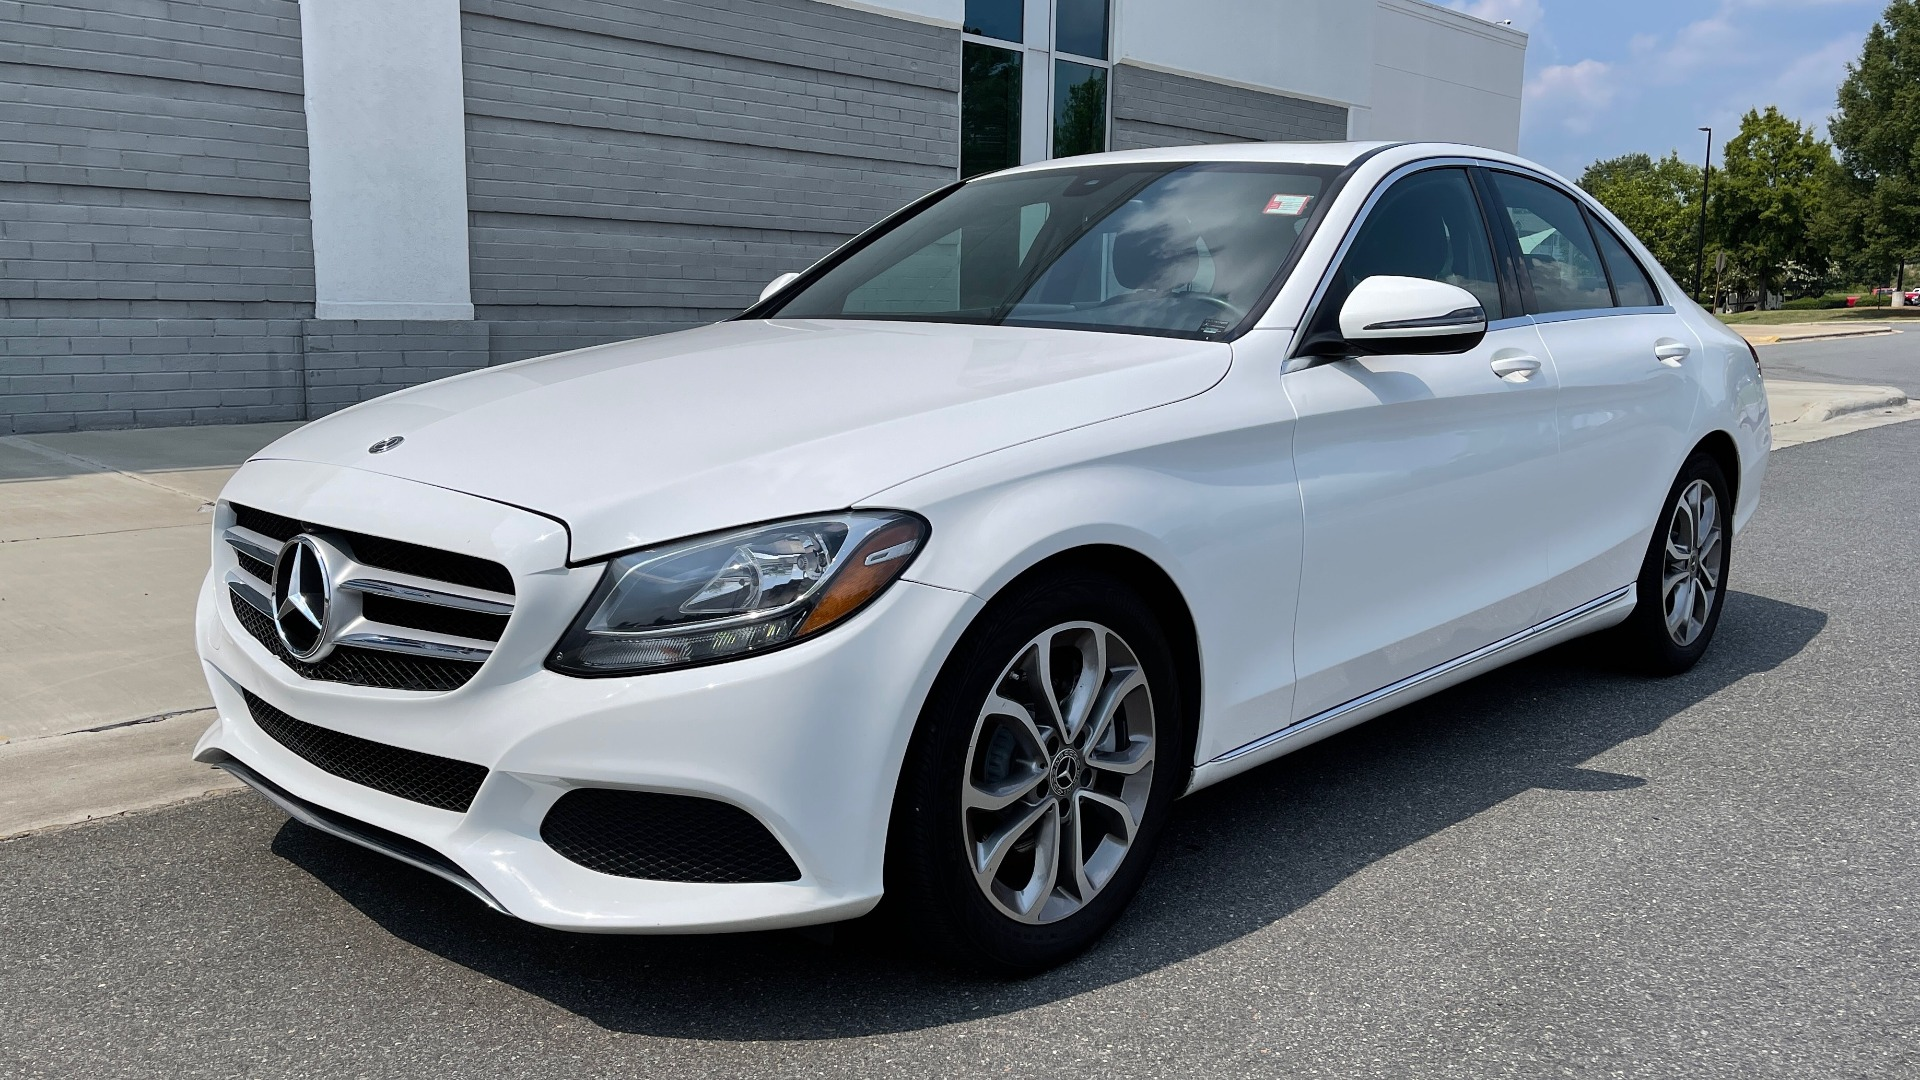 Used 2018 Mercedes-Benz C-CLASS C 300 / 2.0L / RWD / SUNROOF / APPLE~ANDROID / REARVIEW for sale $29,995 at Formula Imports in Charlotte NC 28227 3